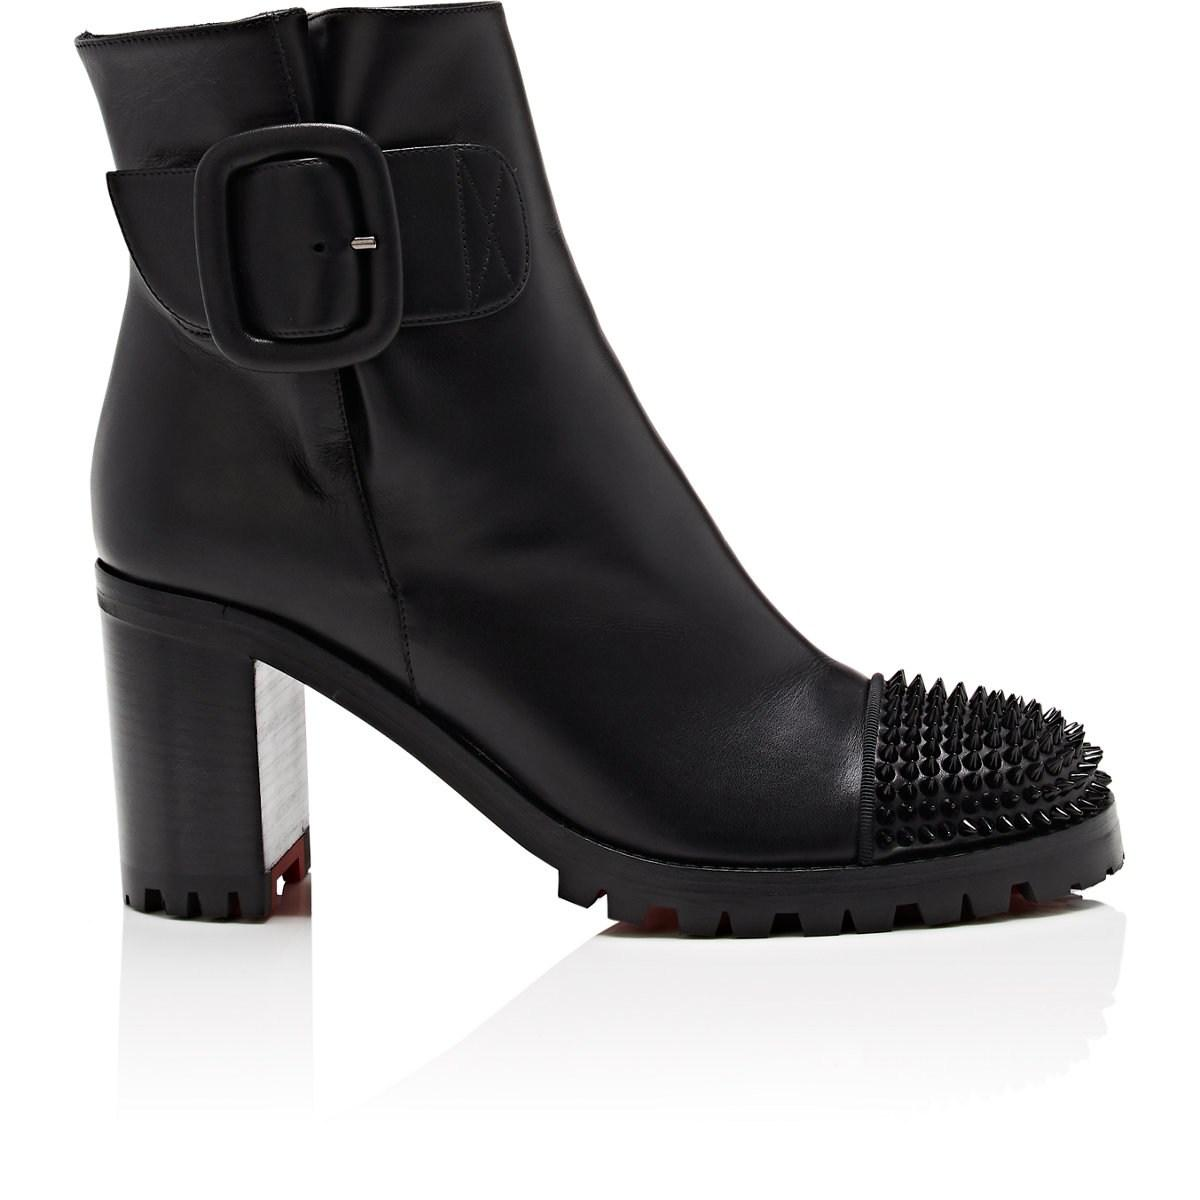 ba008246d96 Lyst - Christian Louboutin Olivia Snow Leather Ankle Boots in Black